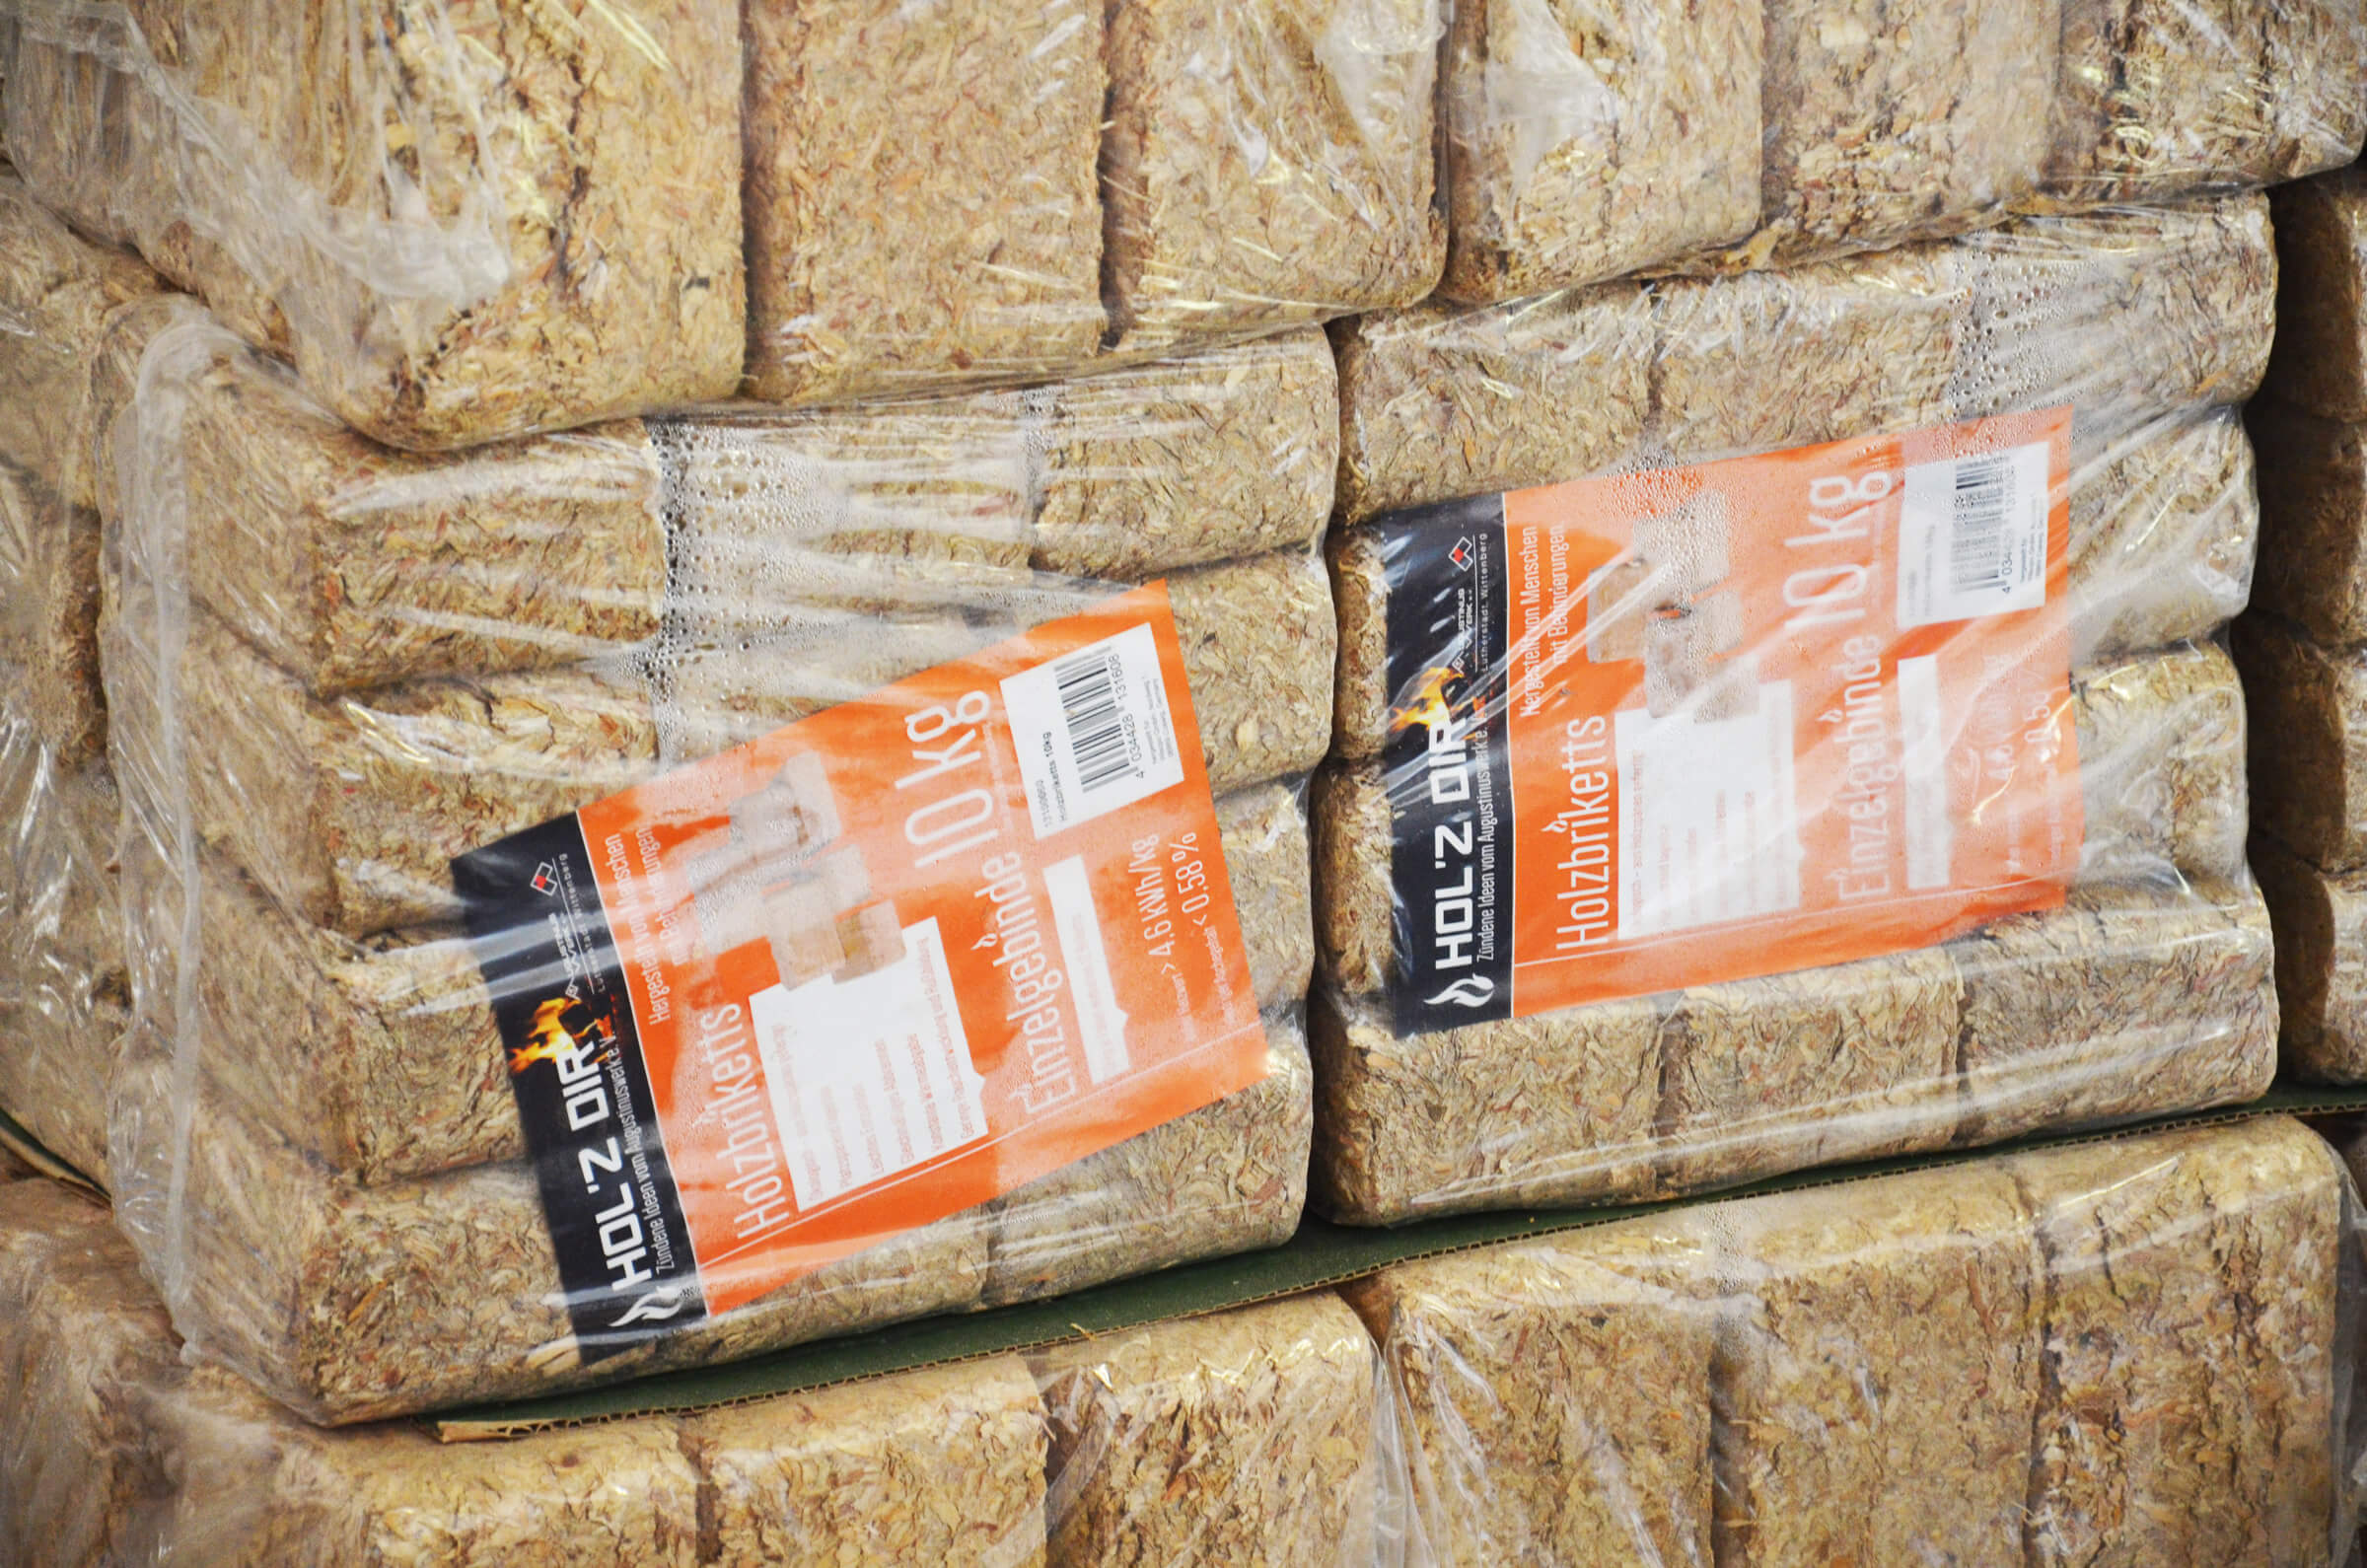 Packaged wood briquettes for sale